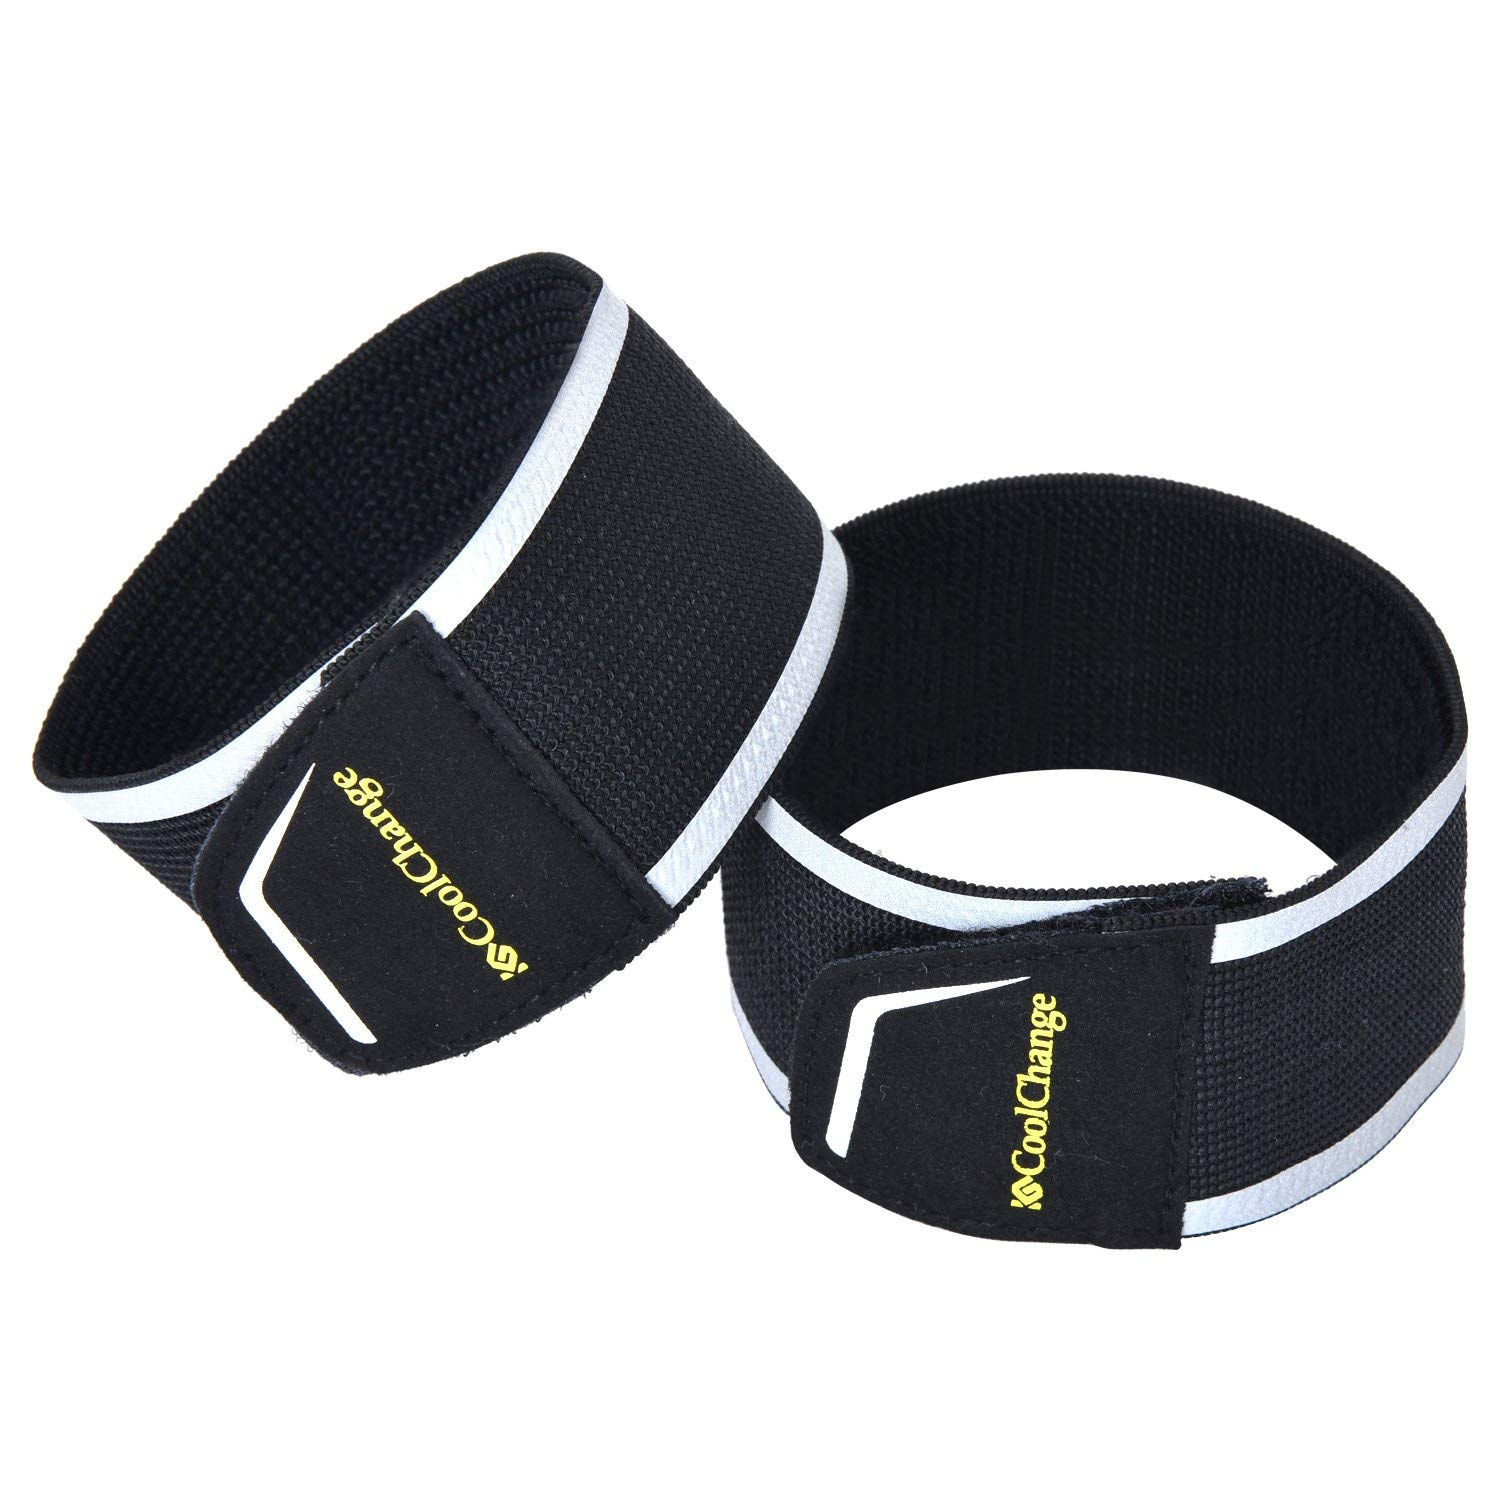 5pcs Outdoor Sports Reflective Wristband Armband Ankle Band For Running Running Walking Grade Products According To Quality Camping & Hiking